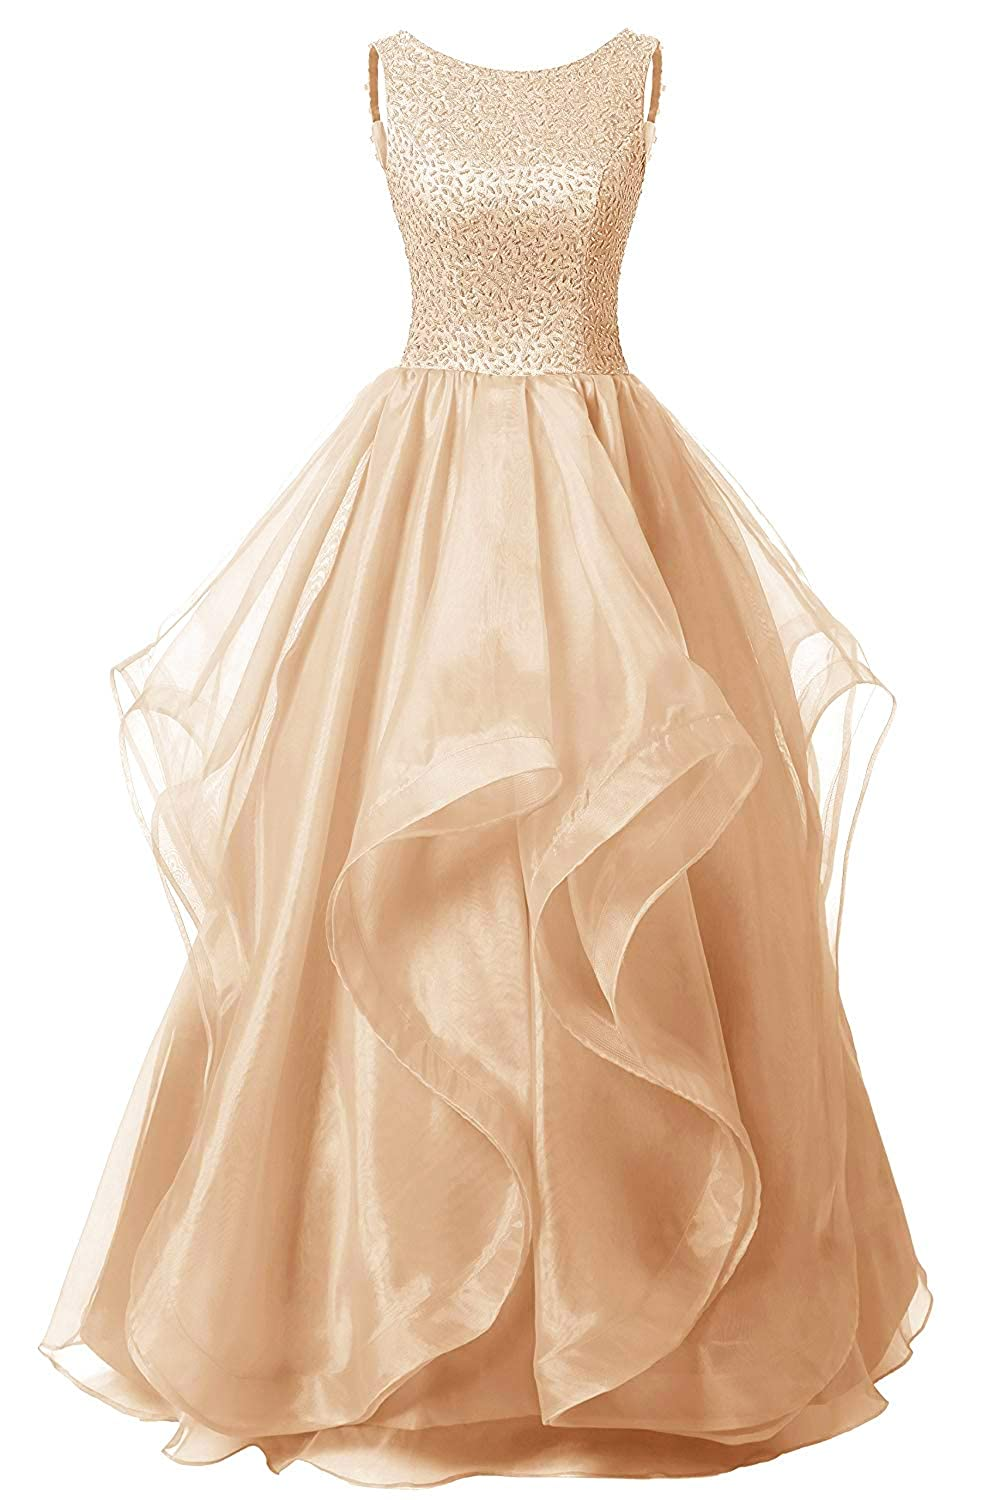 Champagne Uther Long Formal Evening Prom Dress Organza Bridesmaid Dresses Beaded Gown